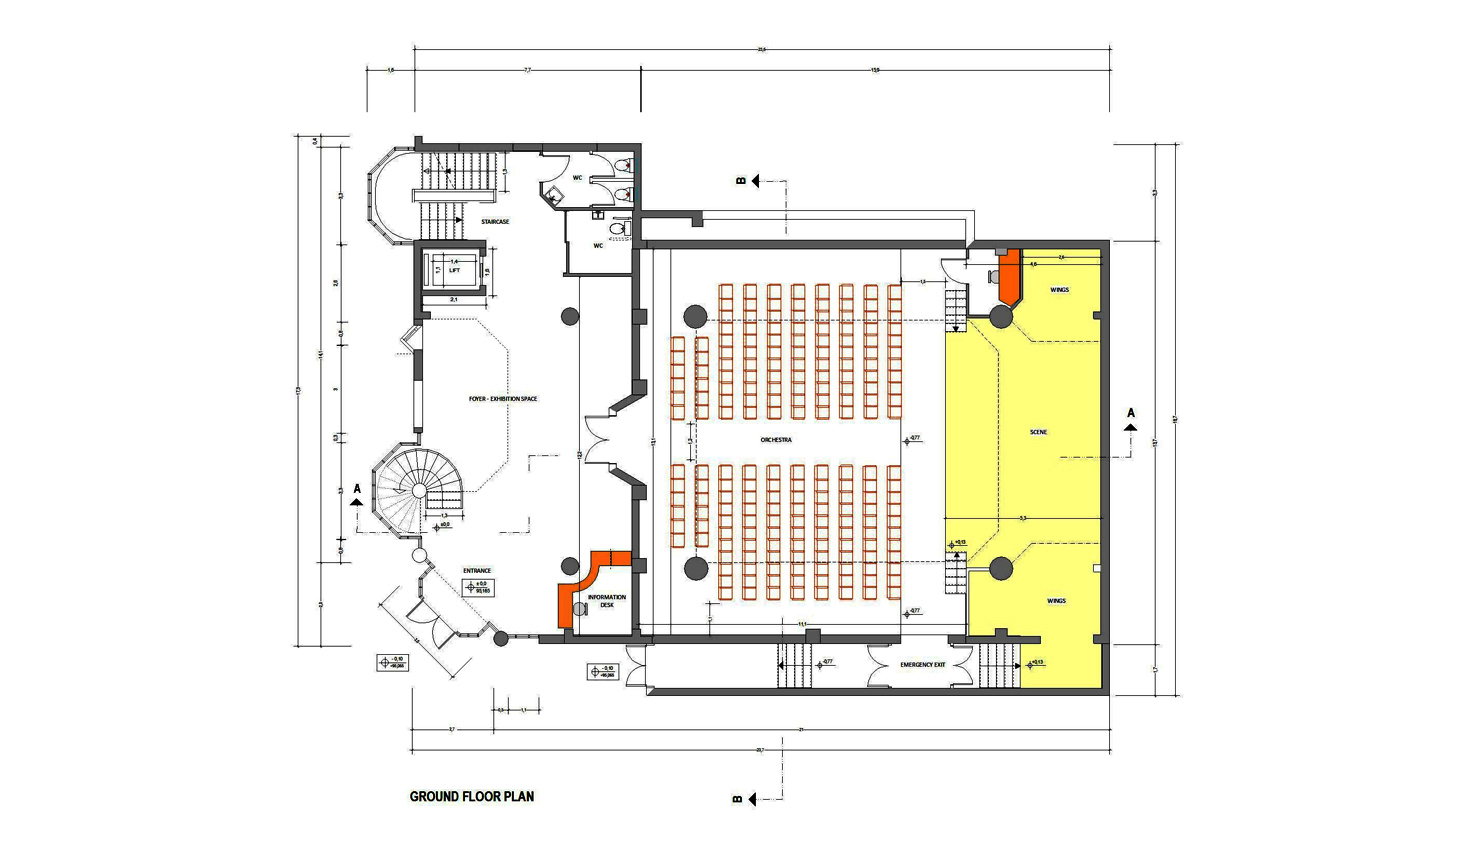 Ground Floor Plan. Cinema, theater & conferences hall; gallery area